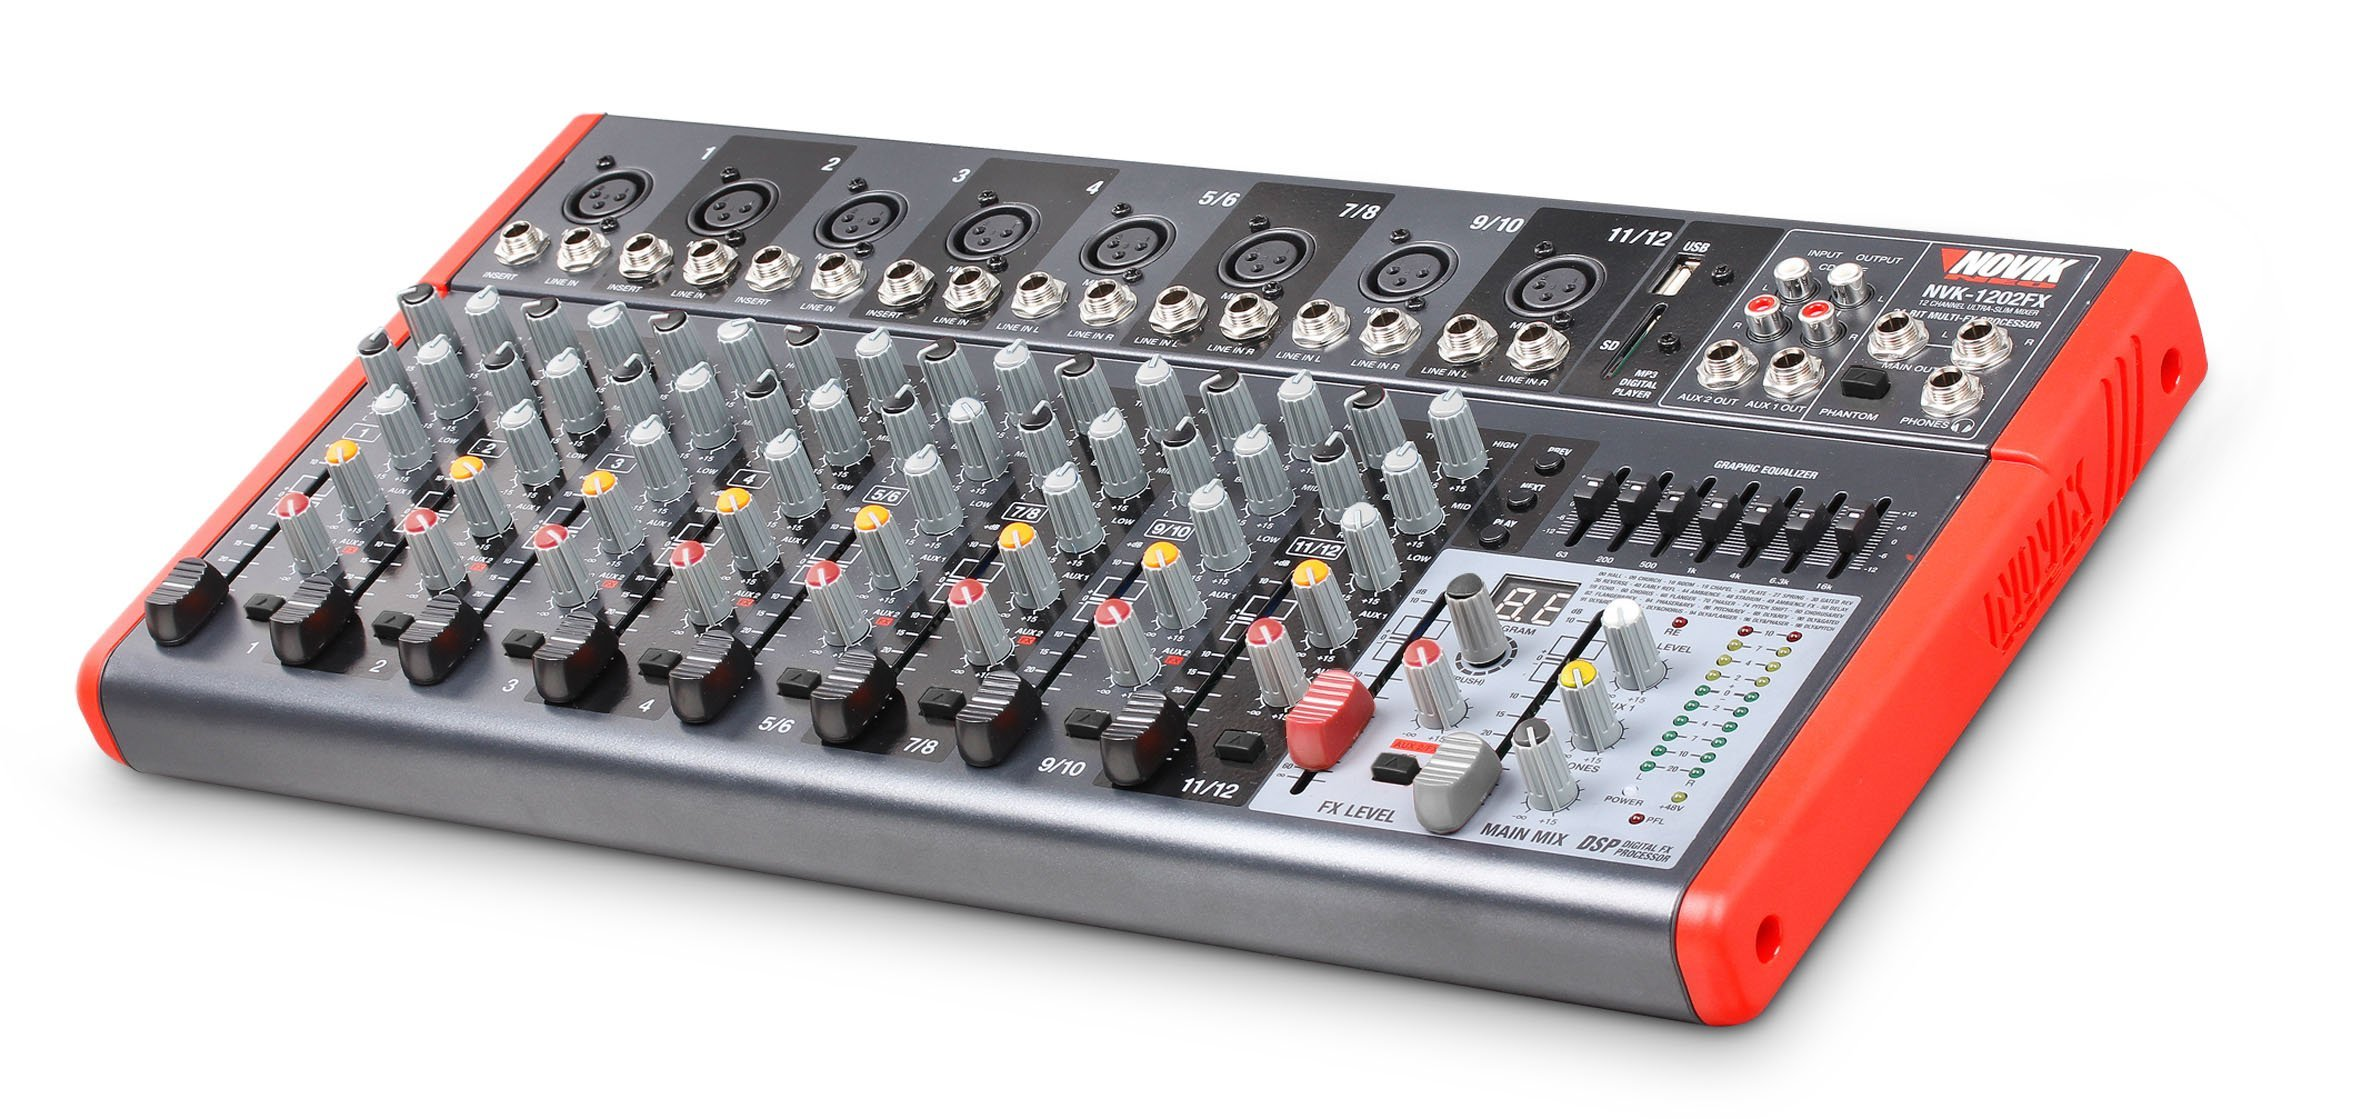 NOVIK NEO MIXER NVK 1202FX 12 Channel Ultra-Slim 8 channels with pre-amplifiers of Mic and Phantom Power (+48v) 4 channels Stereo